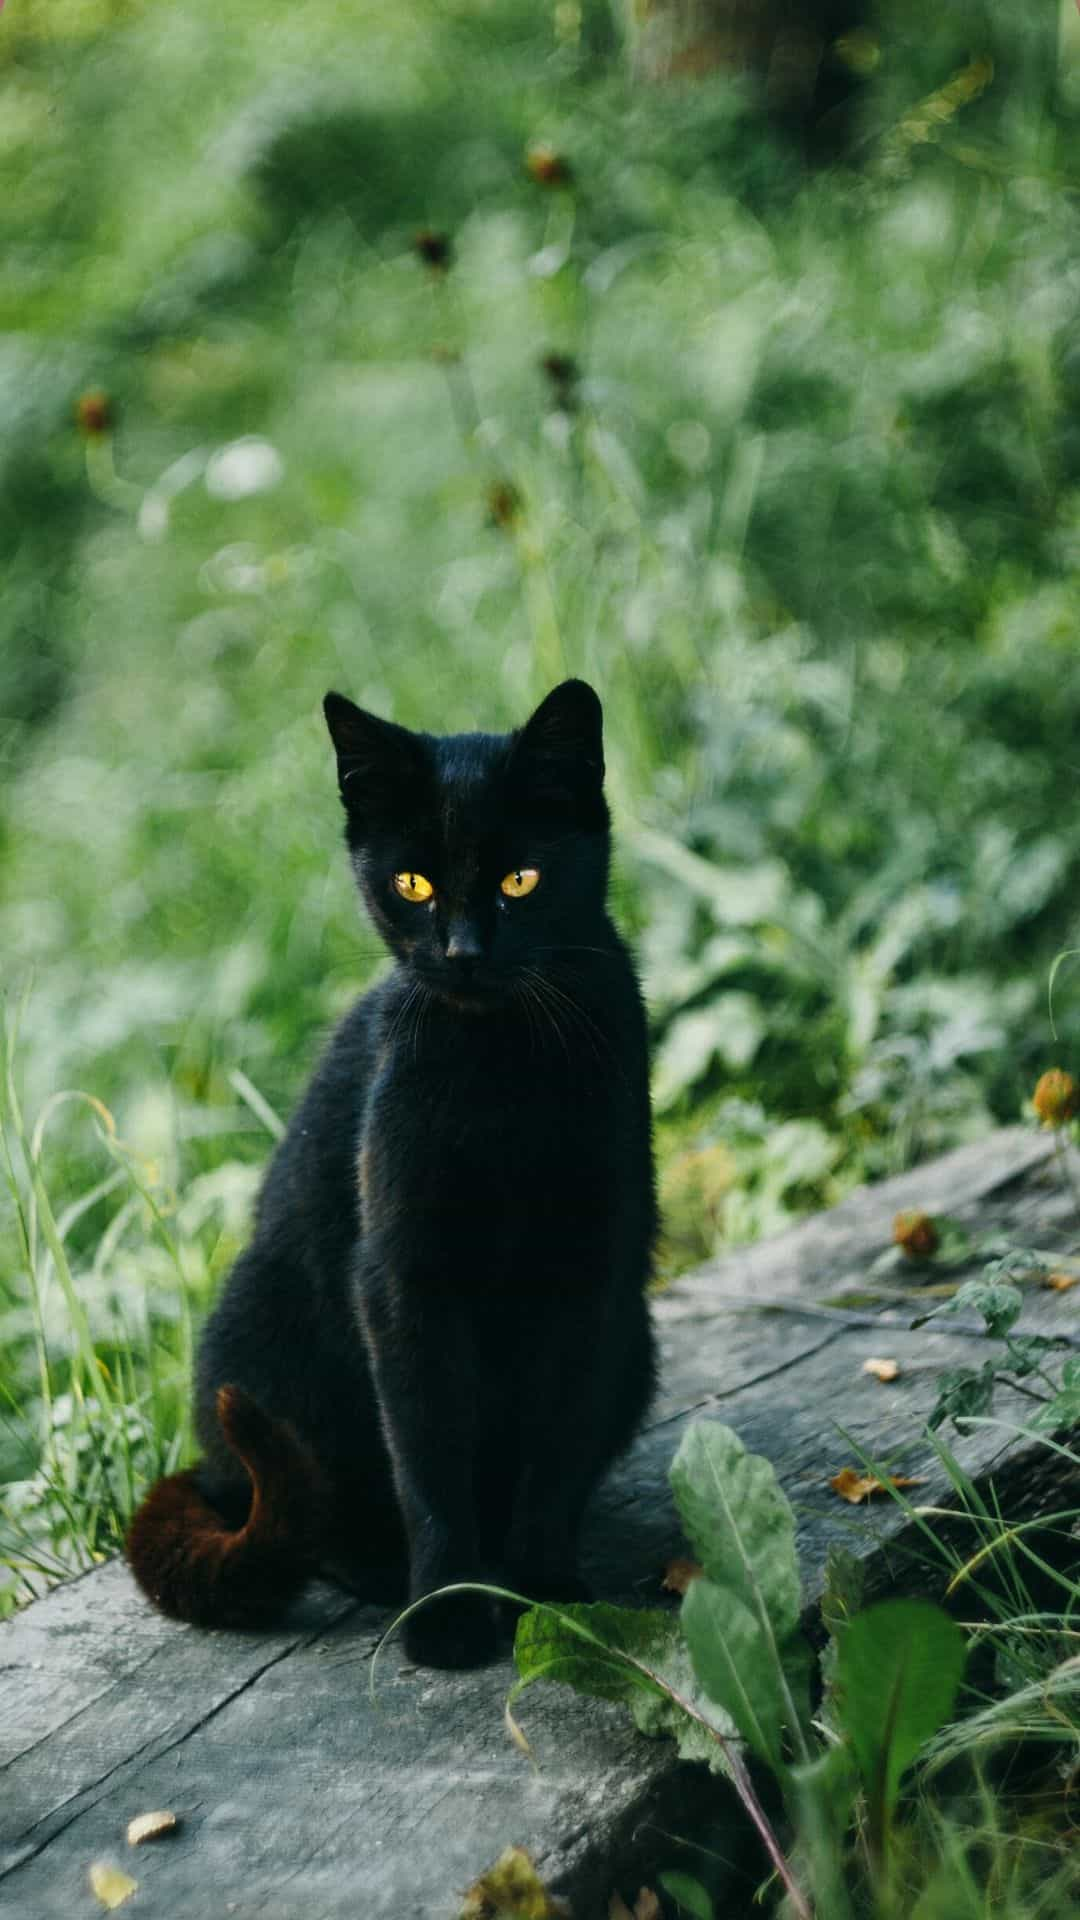 iPhone Black Cat in the grass Wallpaper